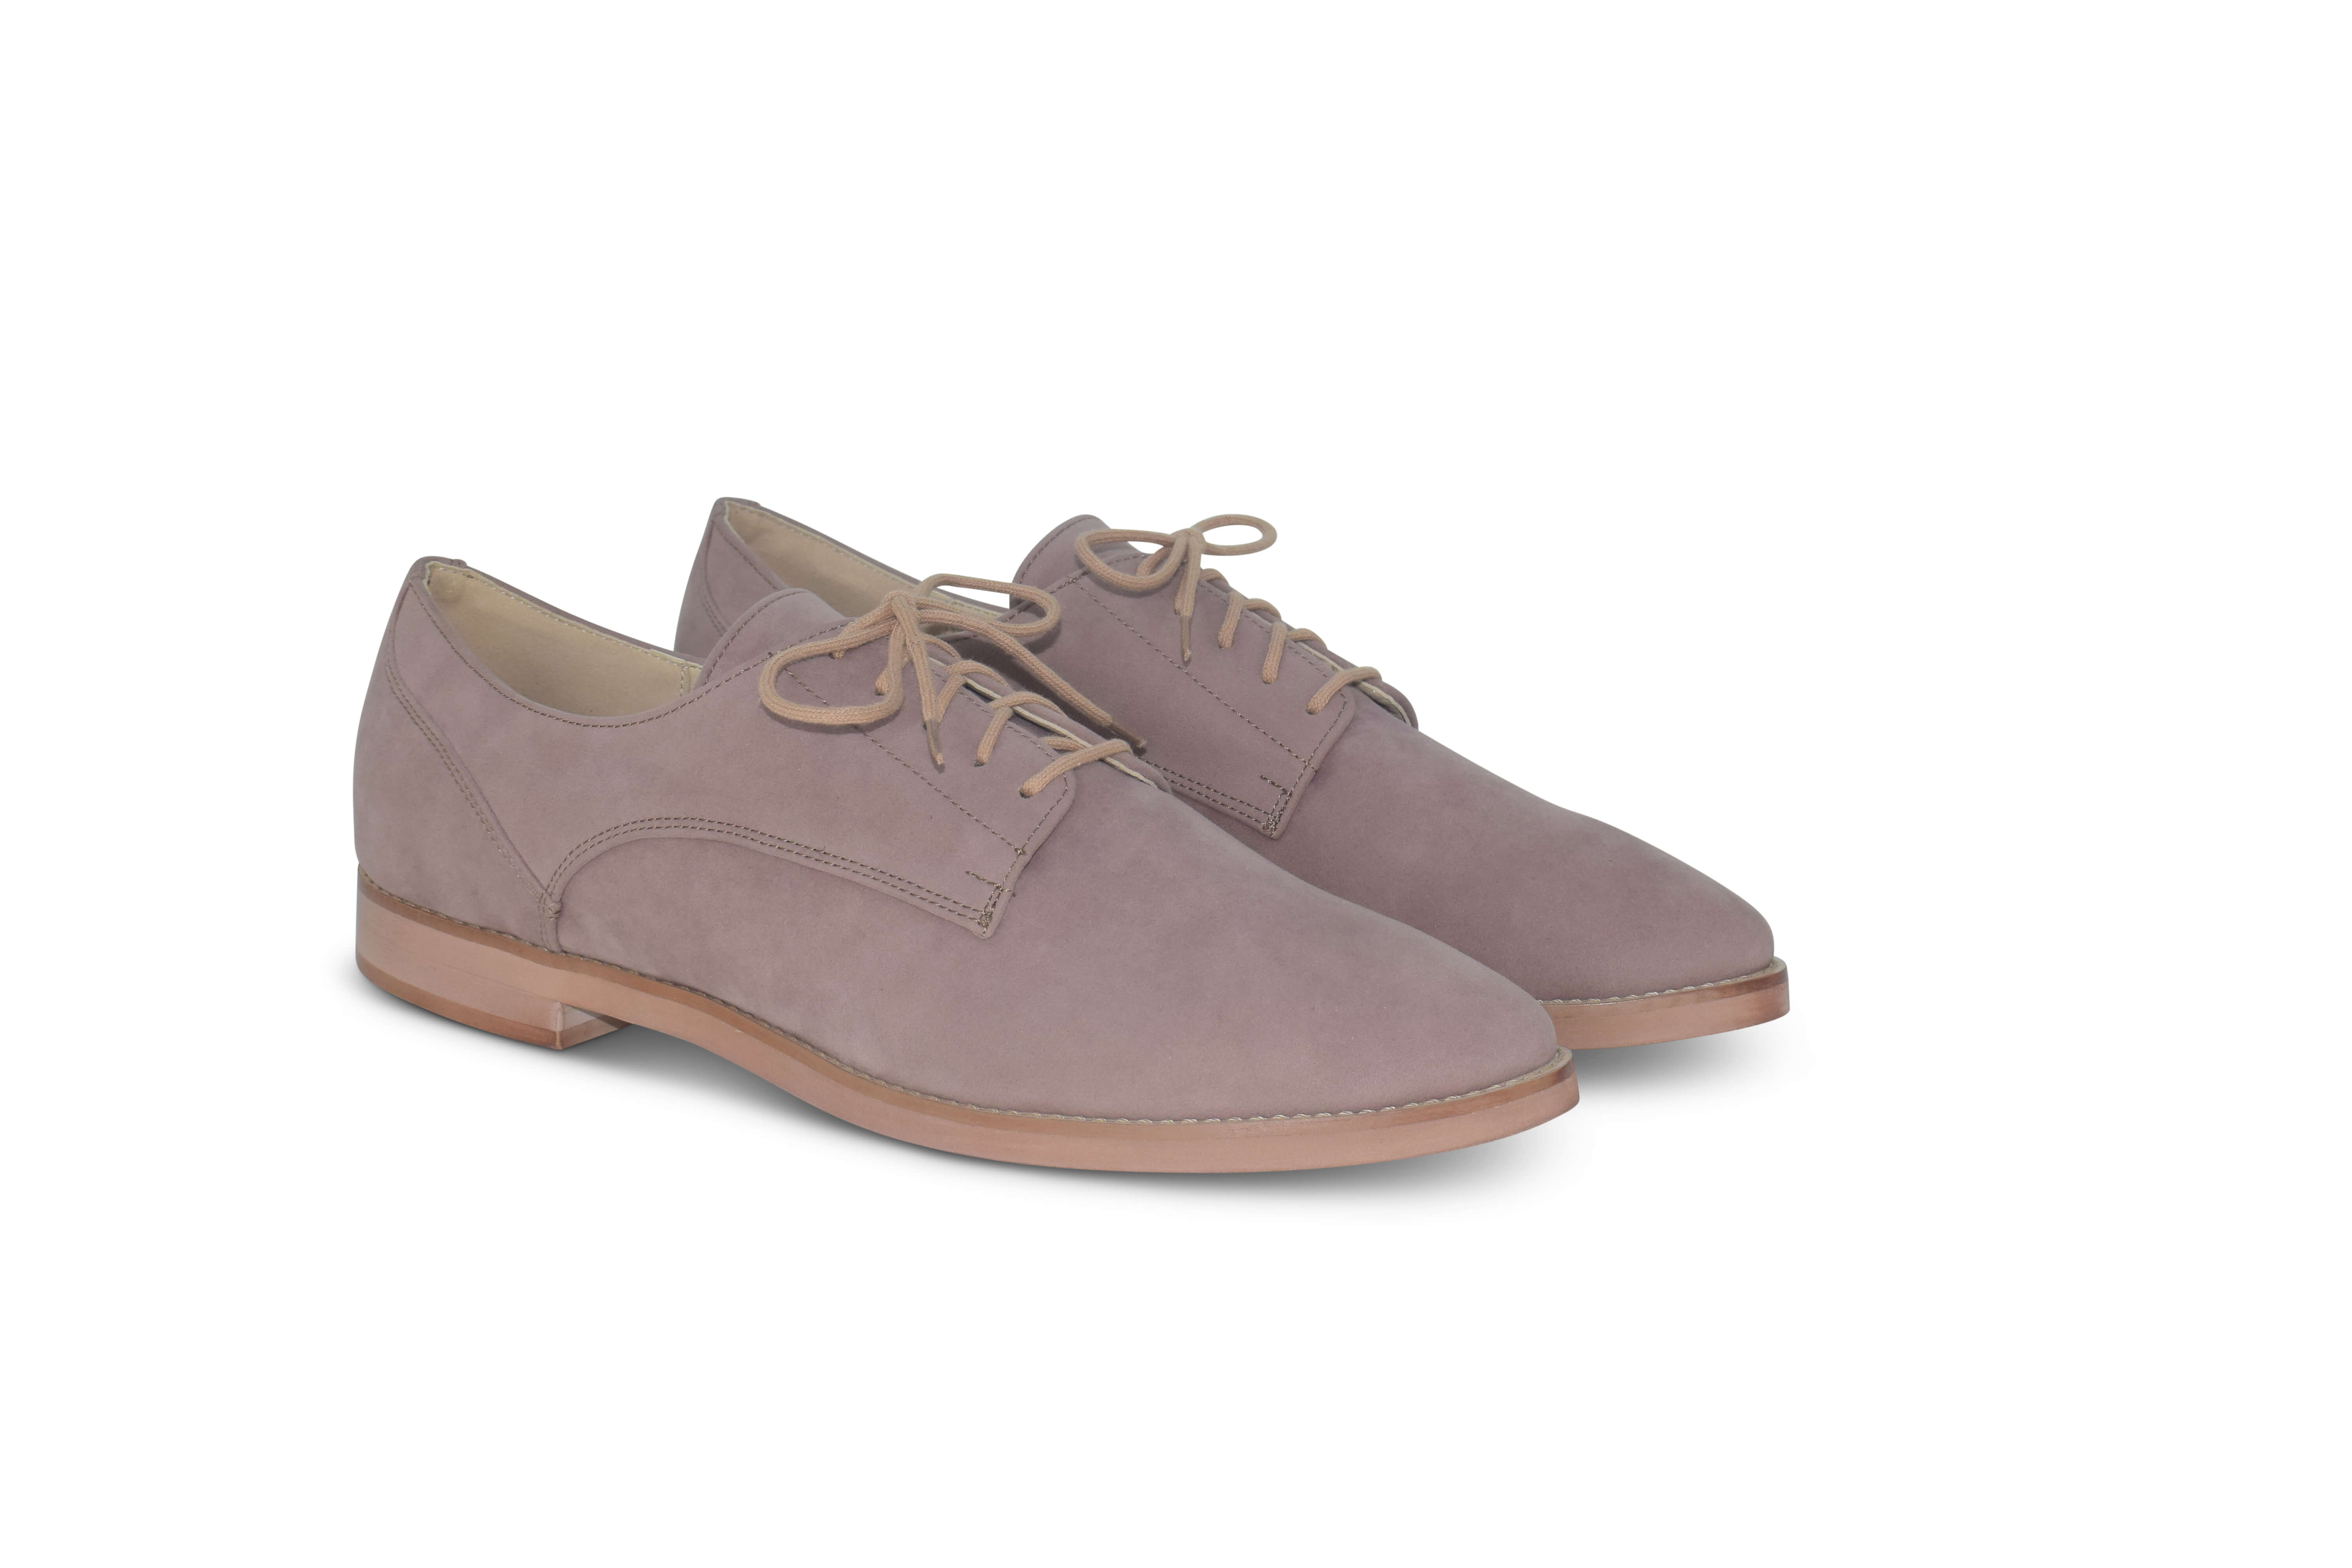 Harriett faux suede Oxfords - beige